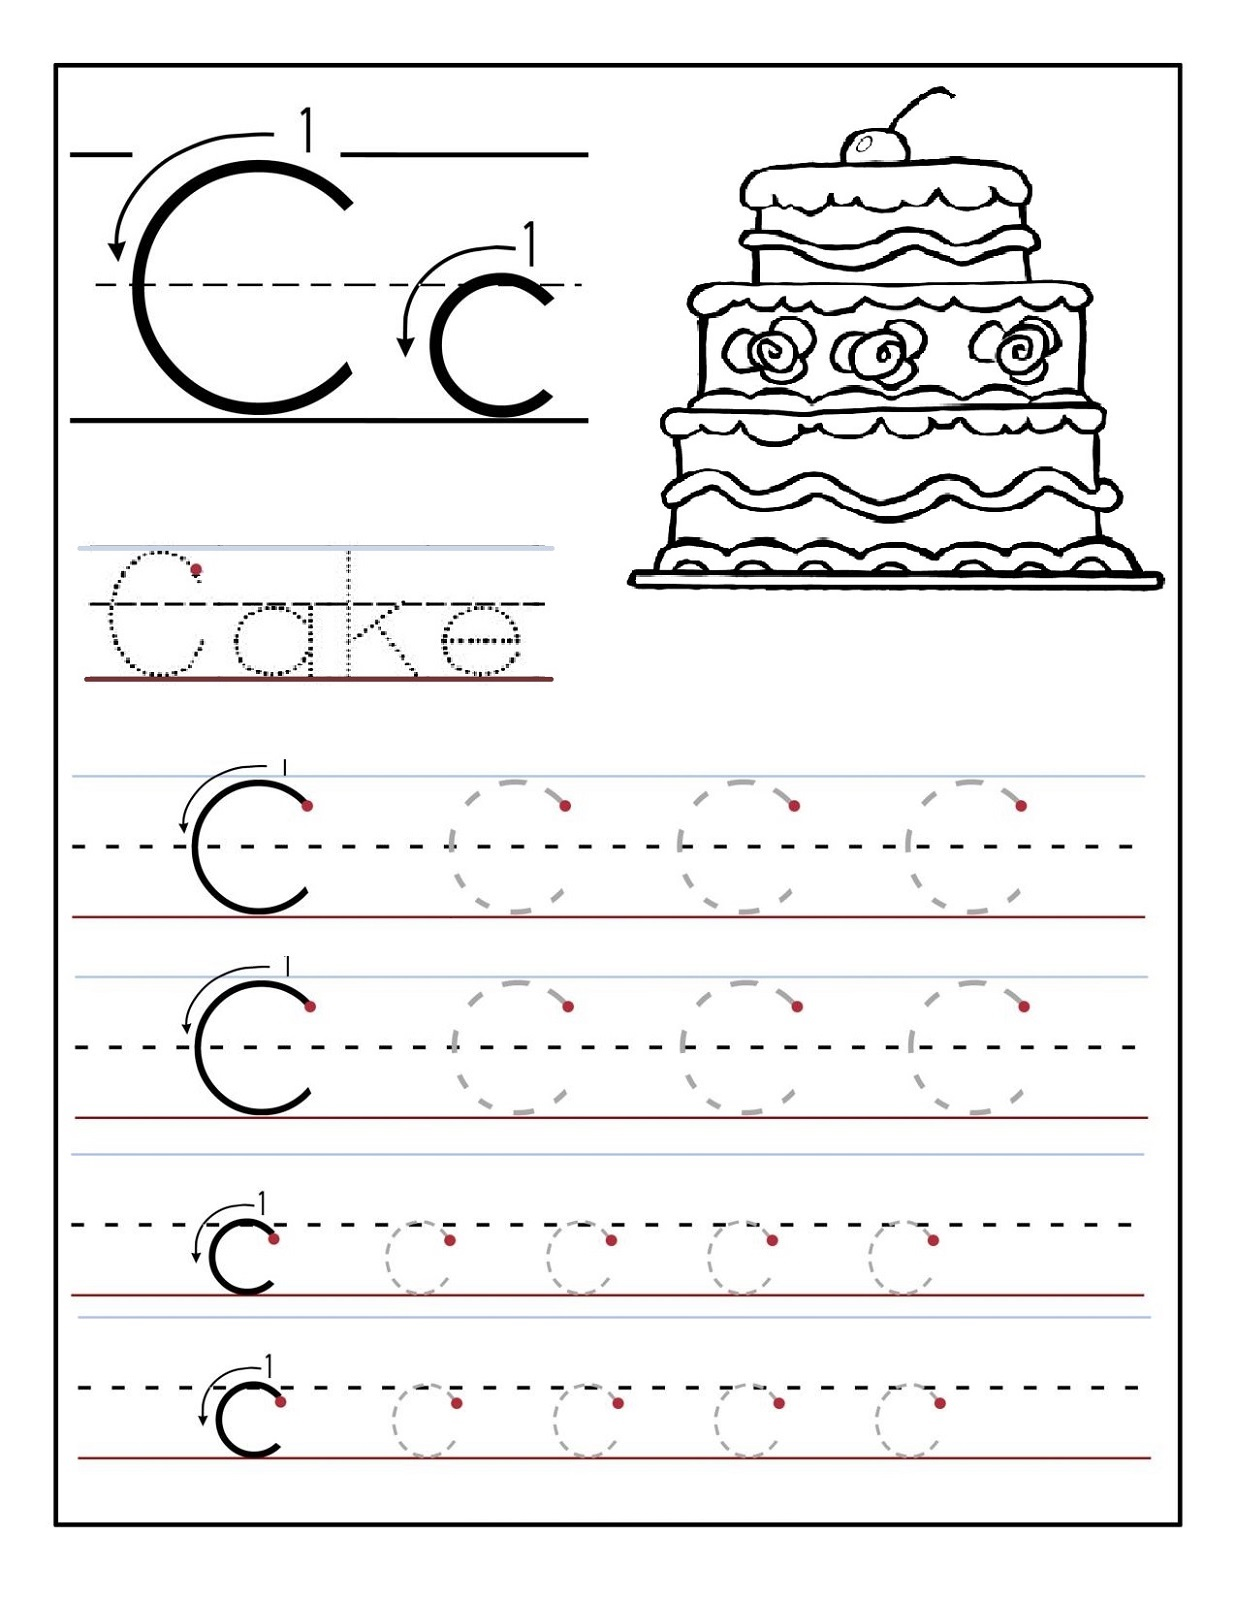 alphabet worksheets for preschoolers 2